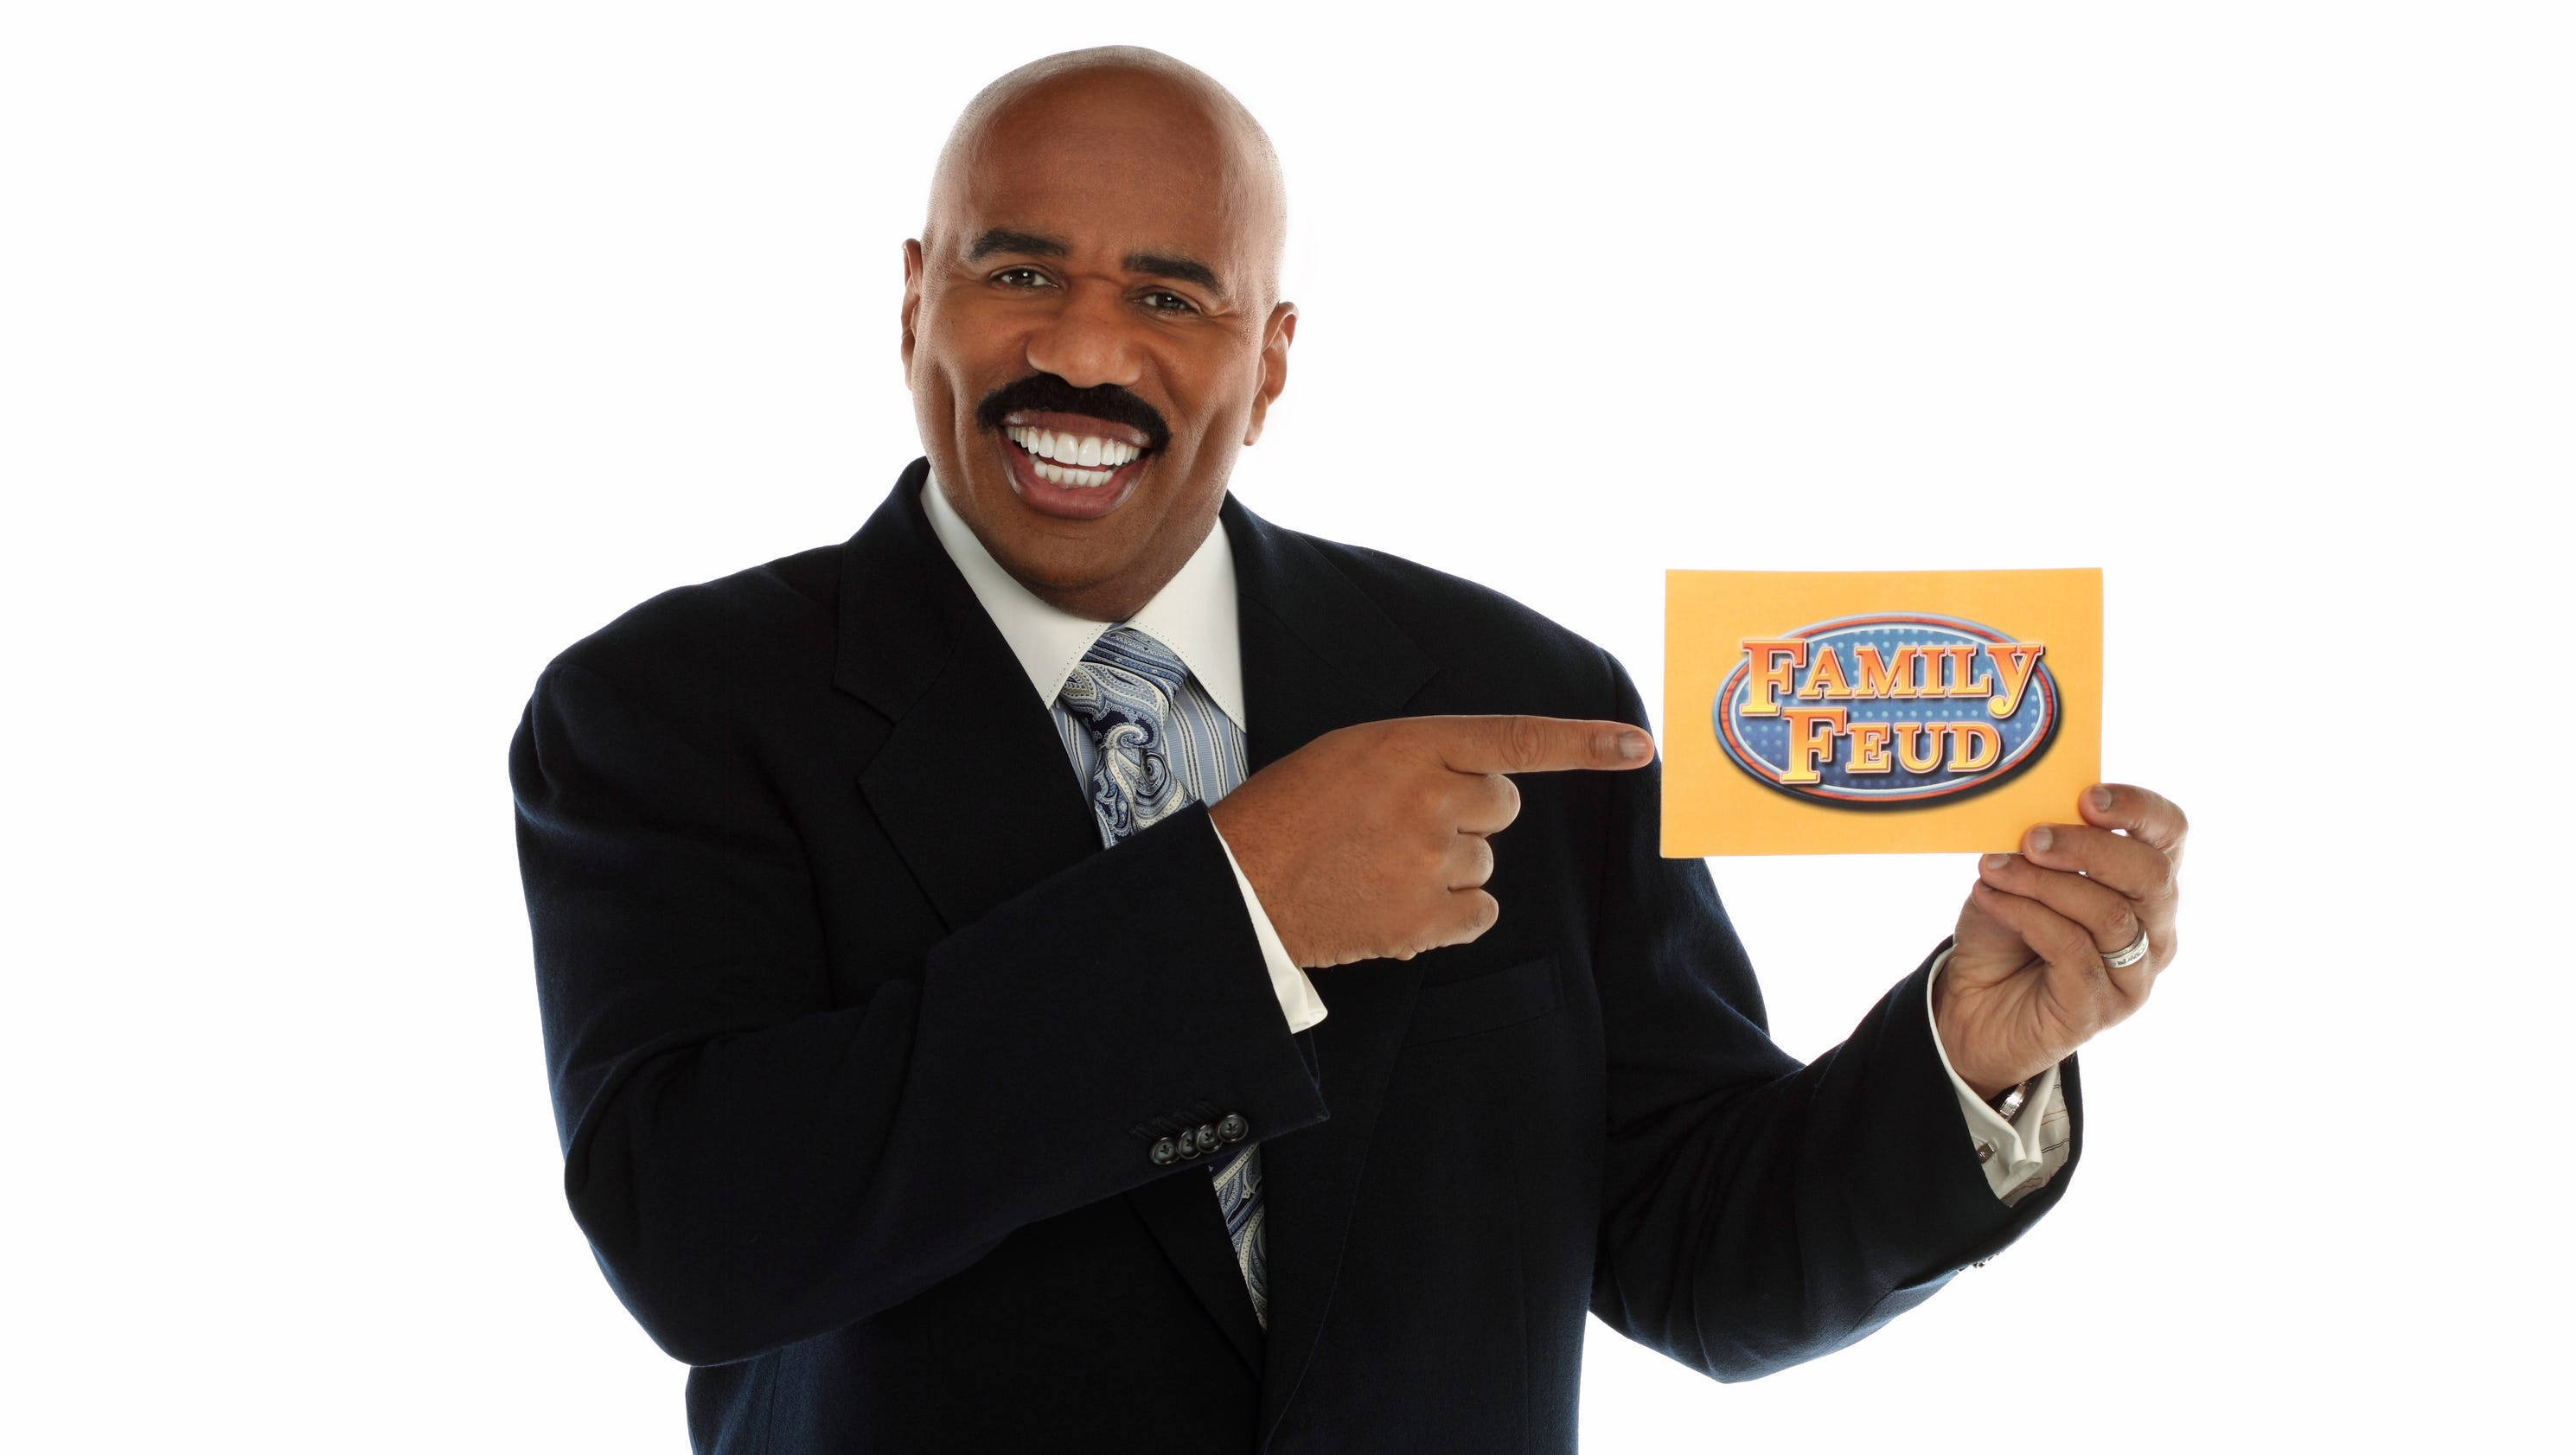 a family feud Get ready for an epic one-hour edition of celebrity family feud as kanye & kim take on kris, khloe, kendall watch celebrity family feud all summer on abc, sundays at 8|7c, and stay tuned for to tell the truth starring anthony anderson at 10|9c.